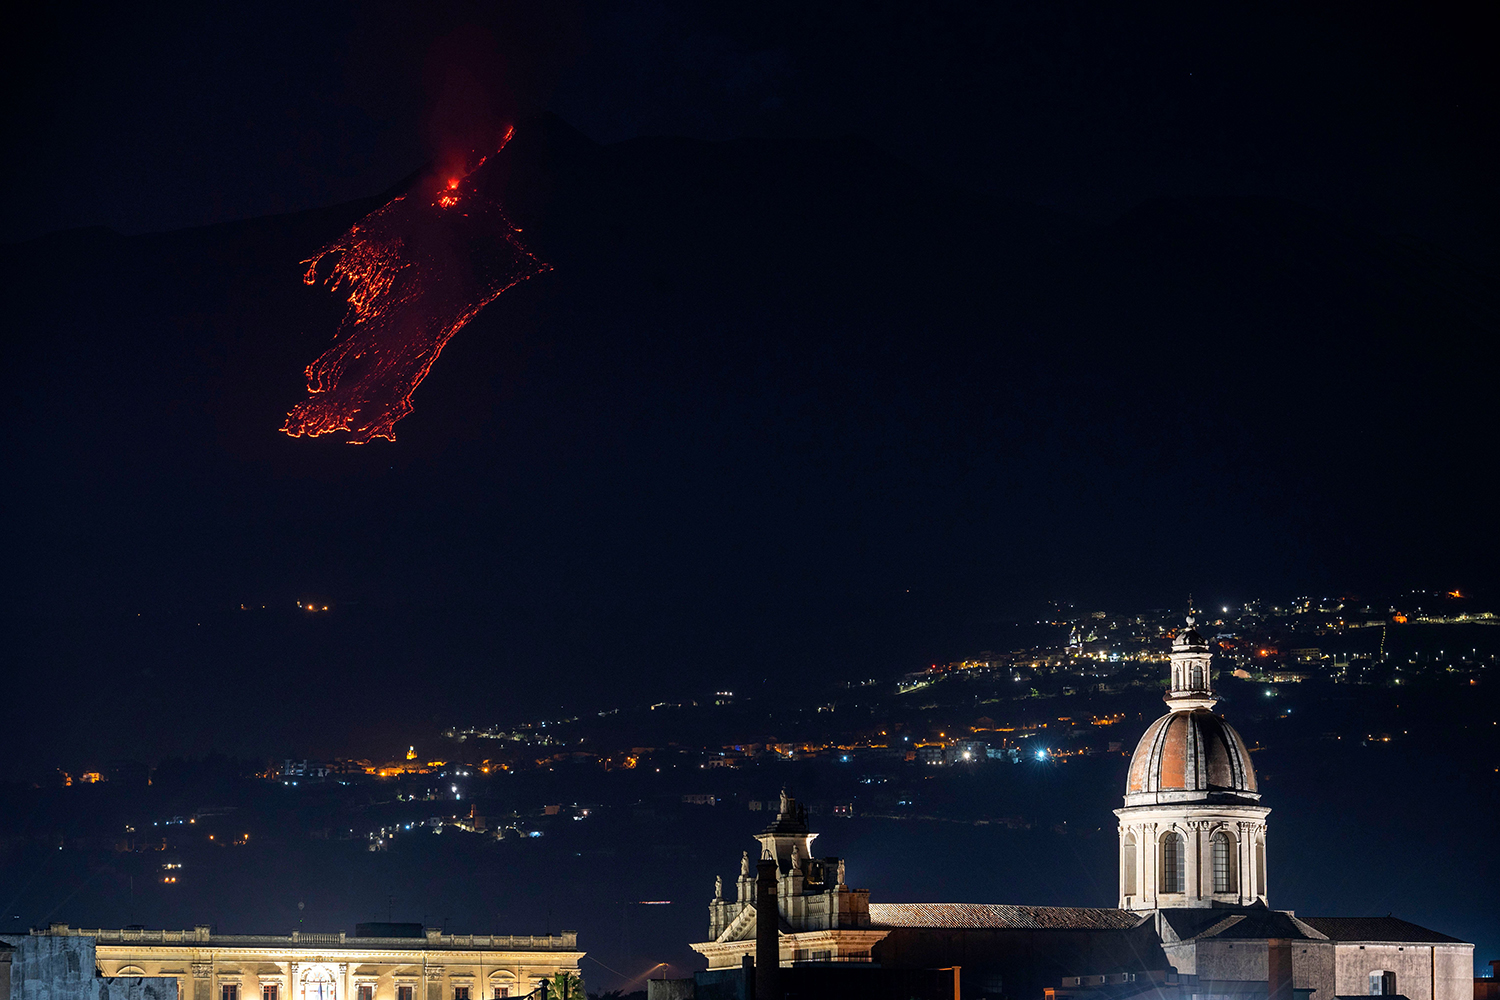 Lava flows along the sides of the southern crater of Italy's Mount Etna volcano, as seen in Porto di Riposto, Sicily, on Feb. 24. GIOVANNI ISOLINO/AFP via Getty Images